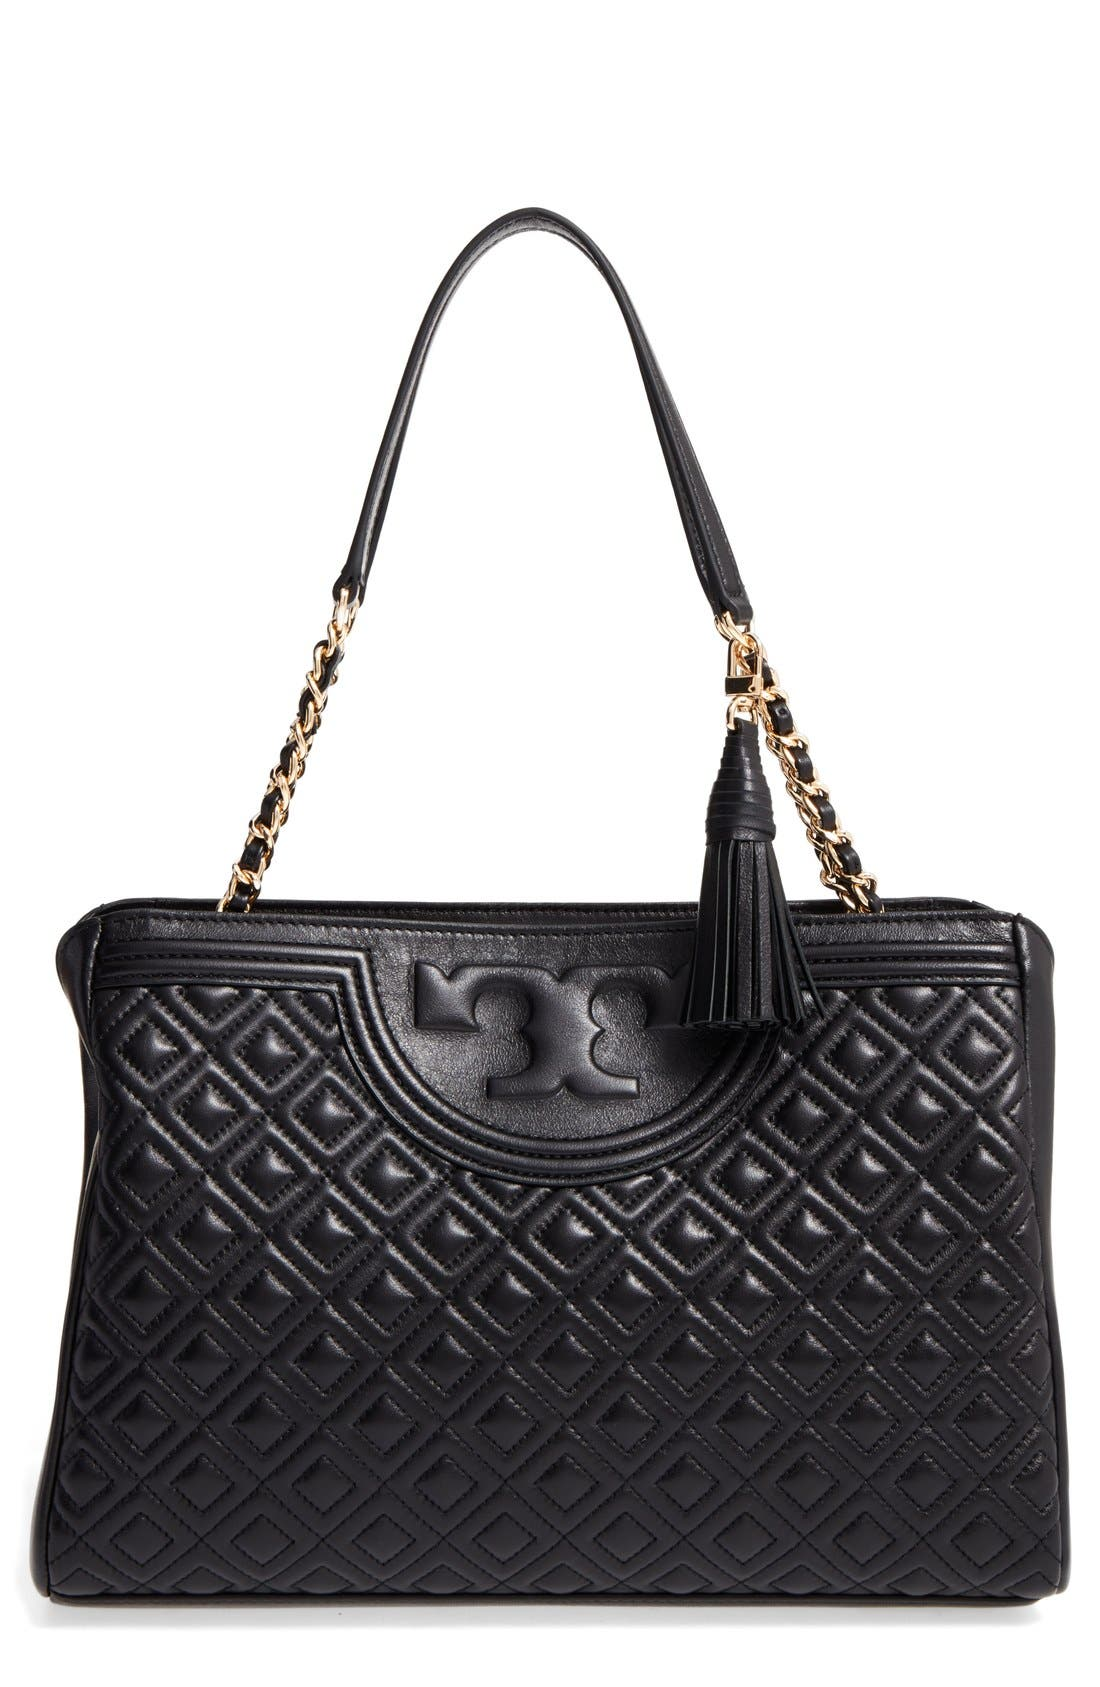 TORY BURCH Fleming Leather Shoulder Bag, Main, color, 001